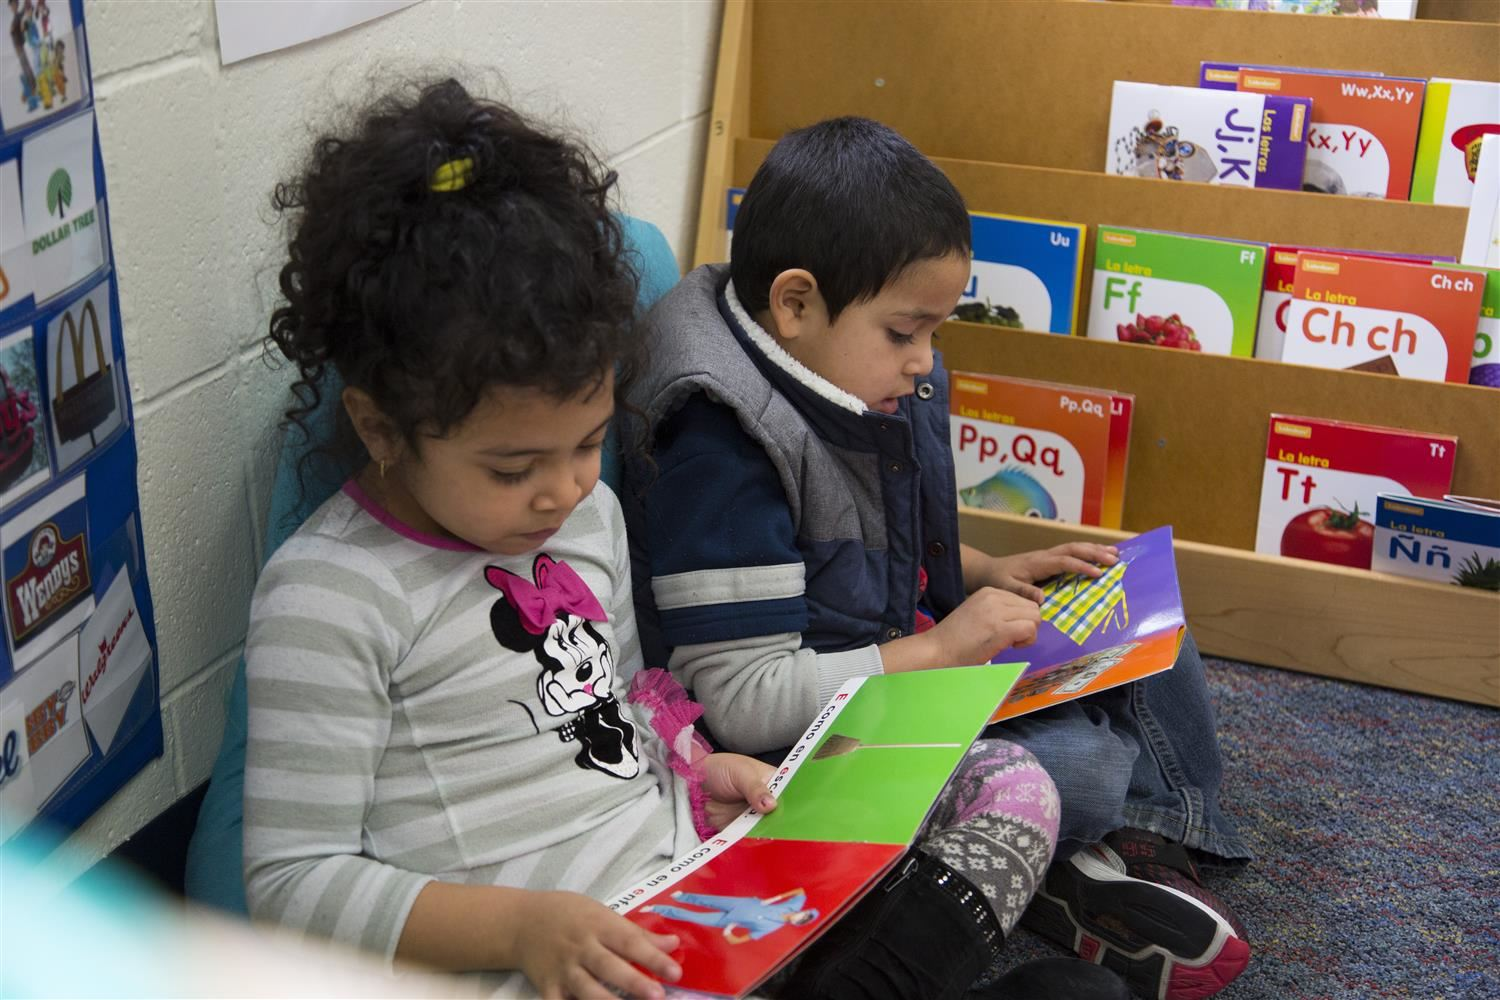 Two dual-language students reading books in classroom